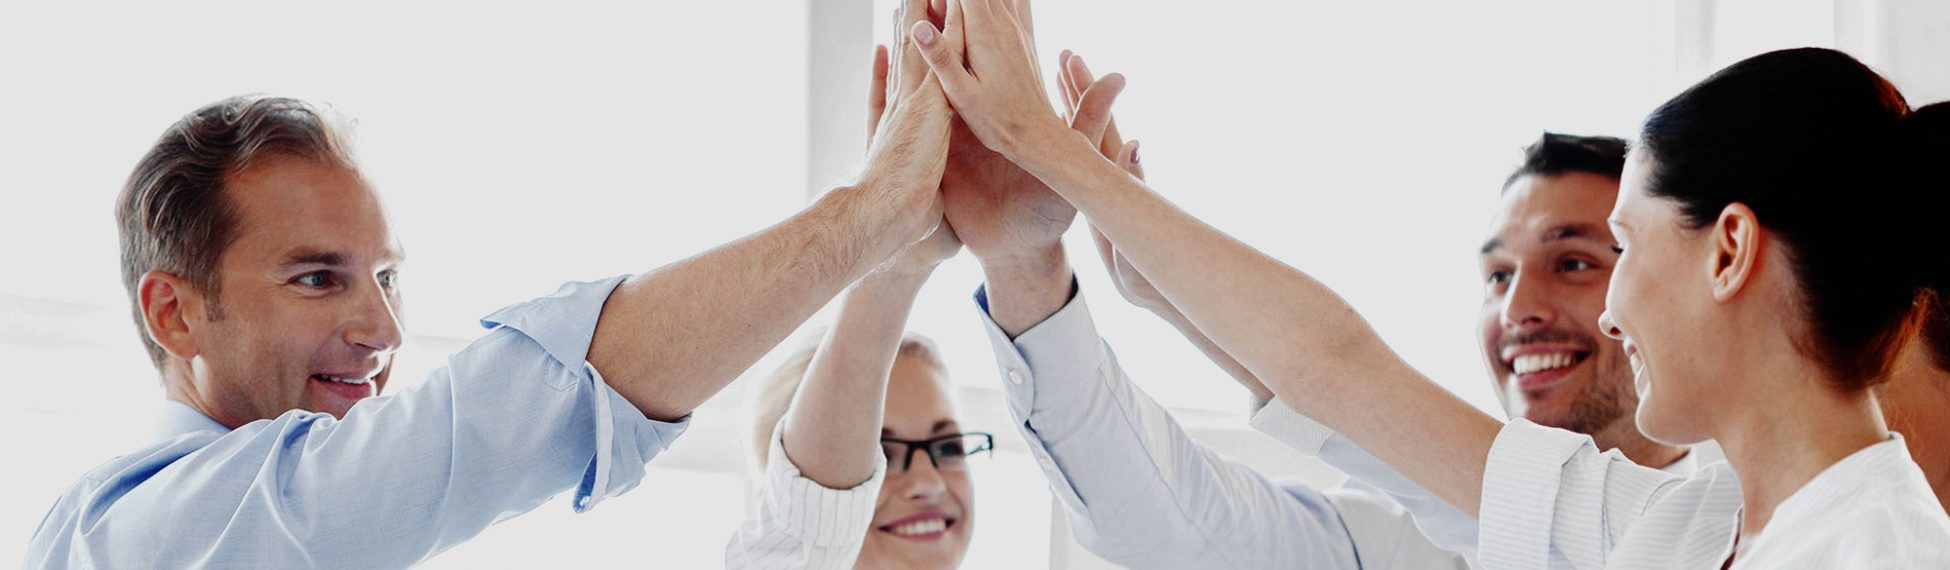 happy-business-team-giving-high-five